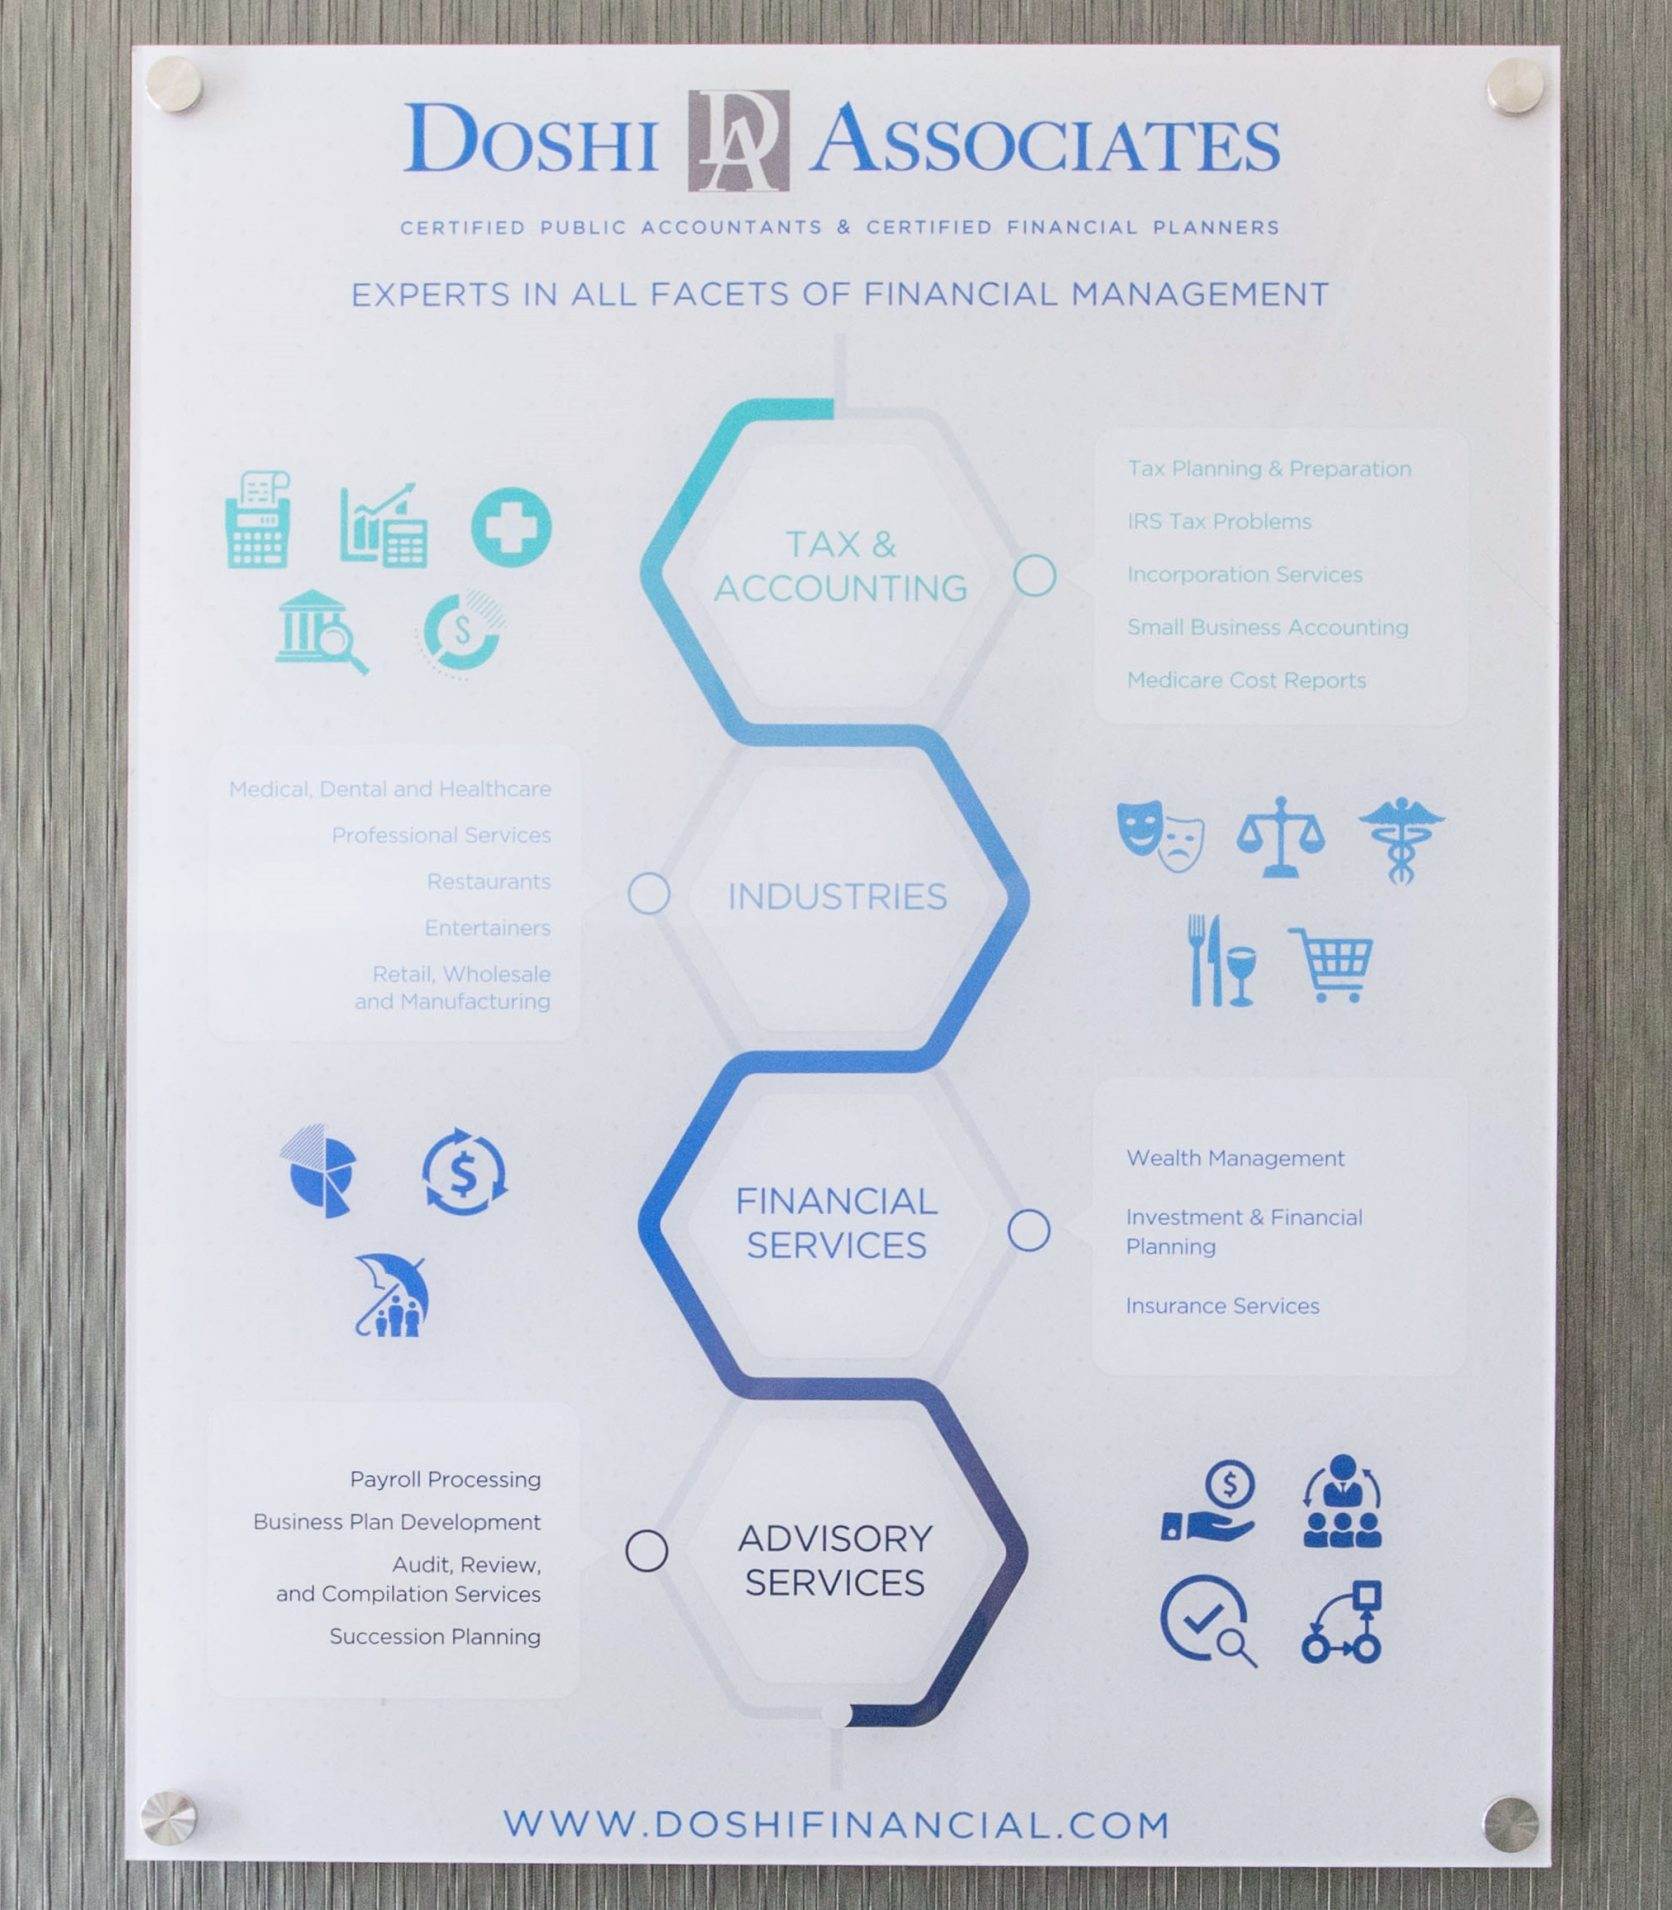 Doshi Infographic